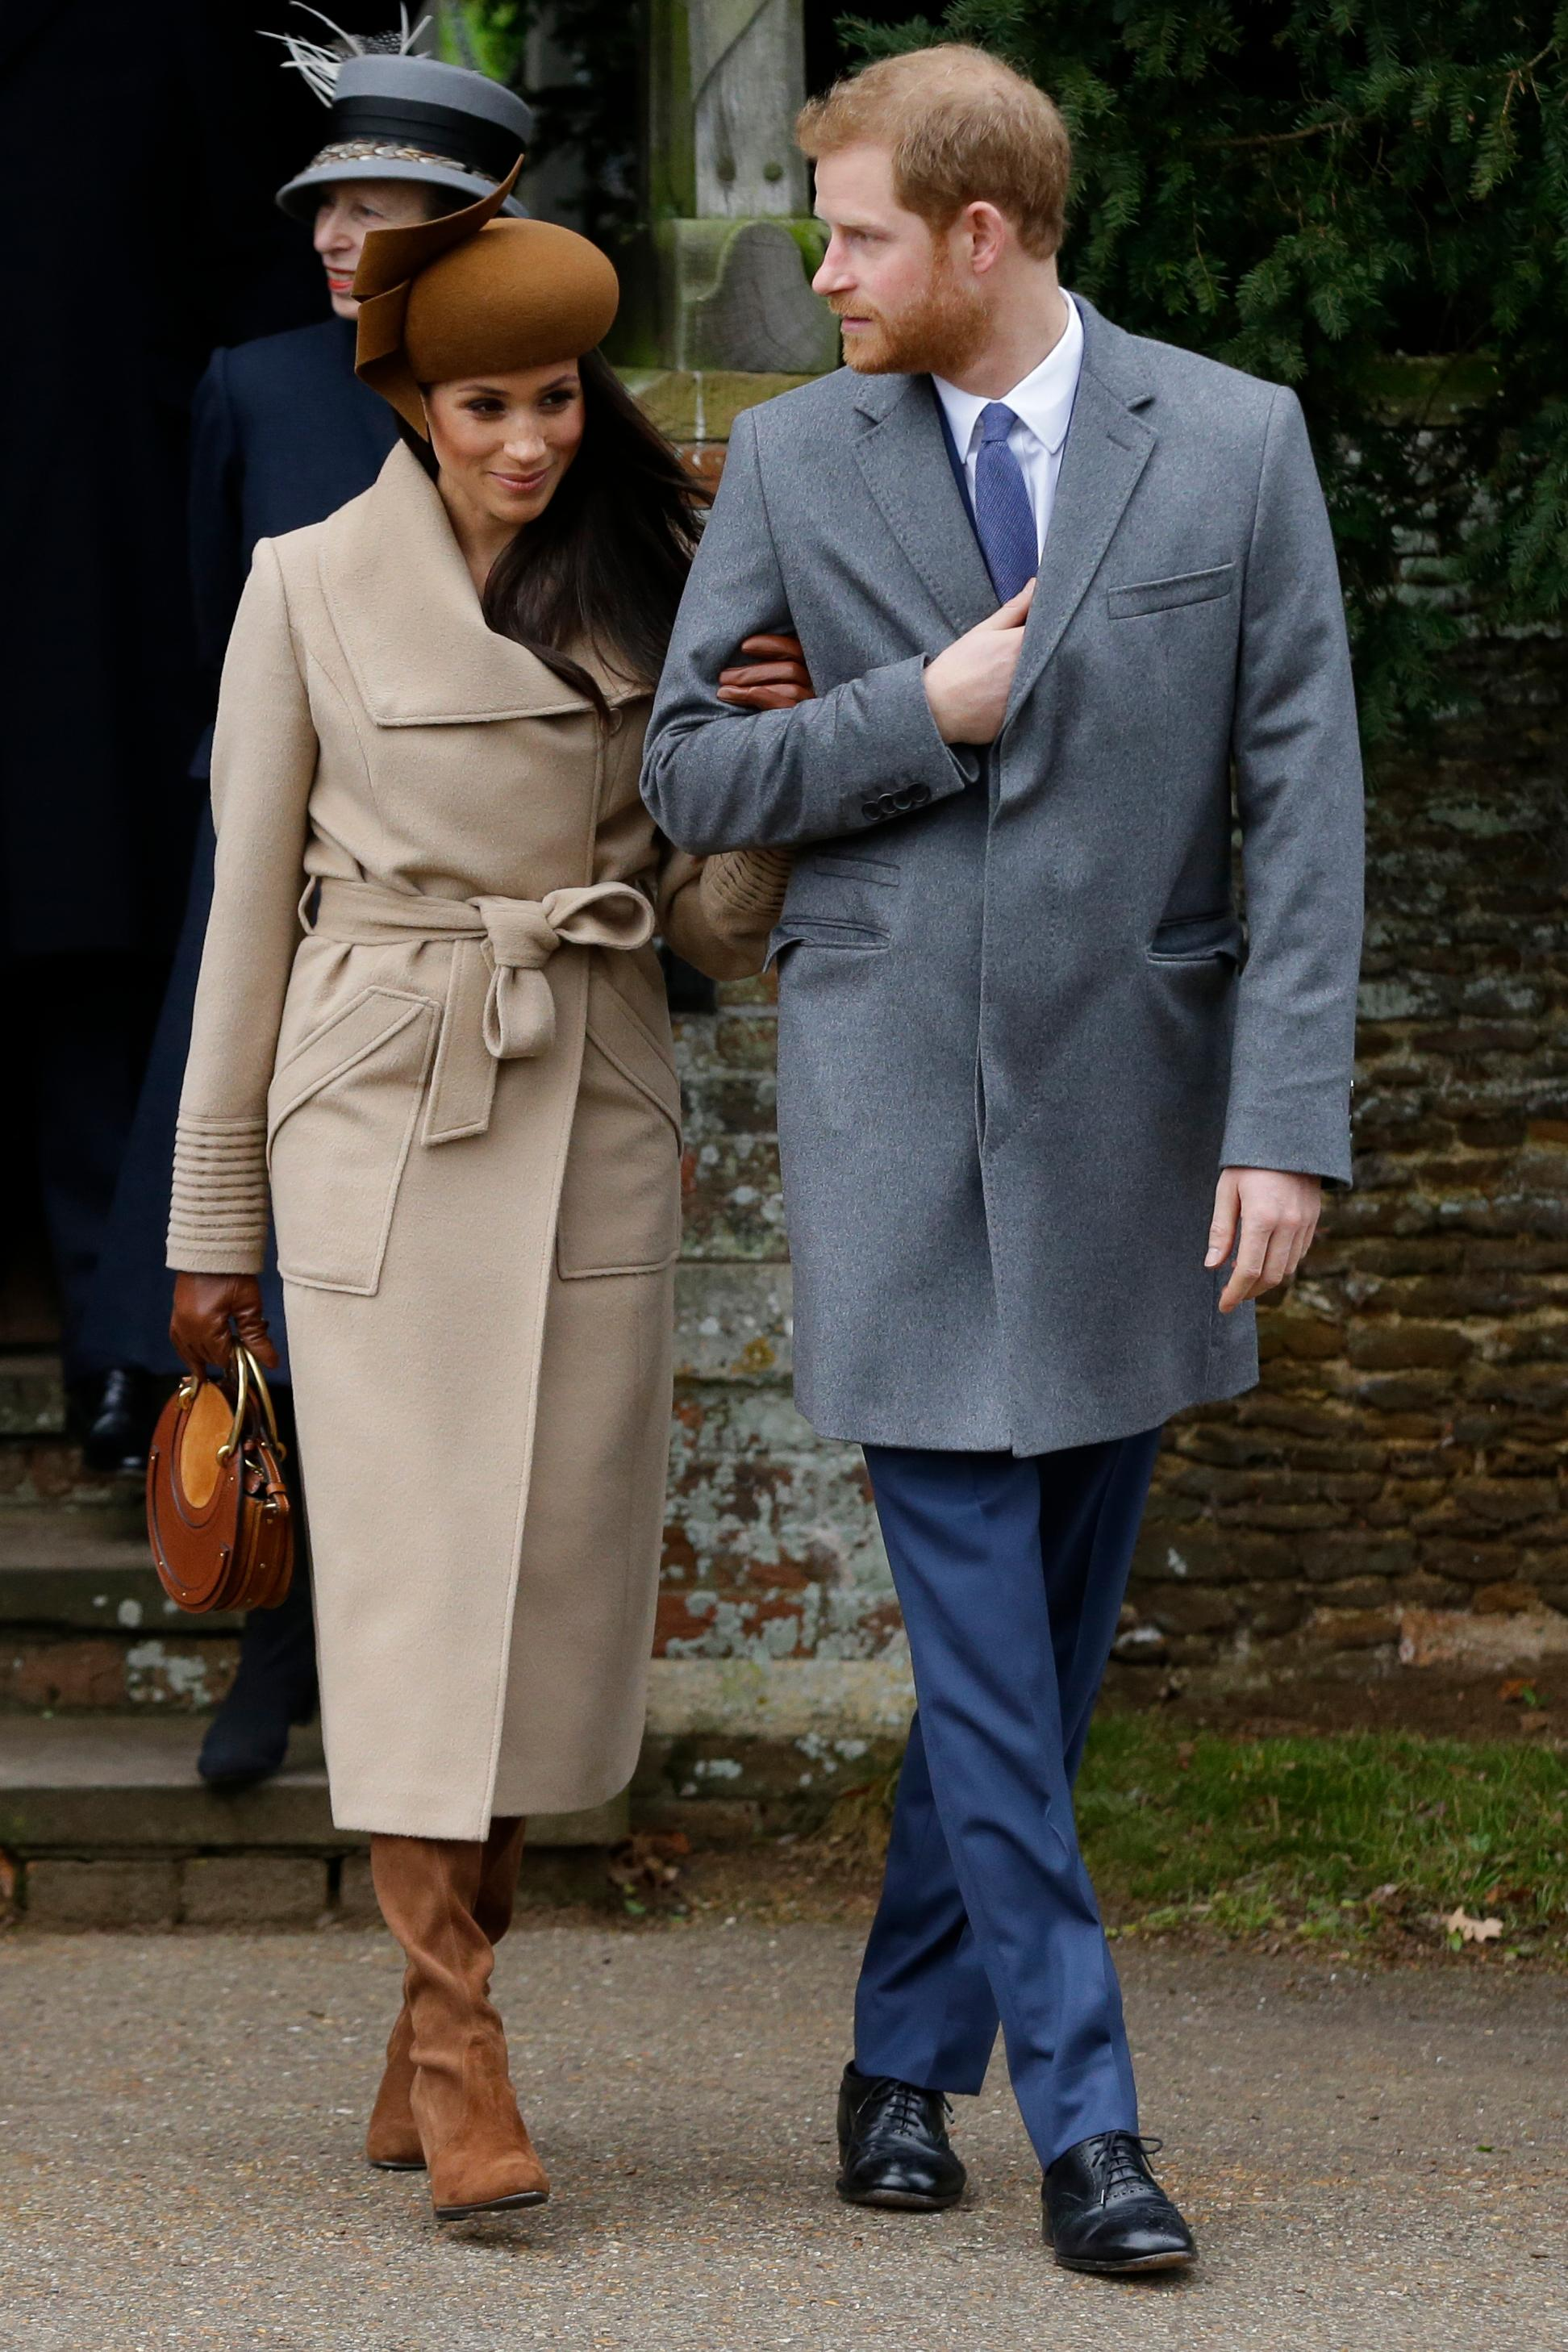 Prince Harry and his fiancee Meghan Markle arrive to attend the traditional Christmas Day service, at St. Mary Magdalene Church in Sandringham, England, Monday, Dec. 25, 2017. (AP Photo/Alastair Grant)